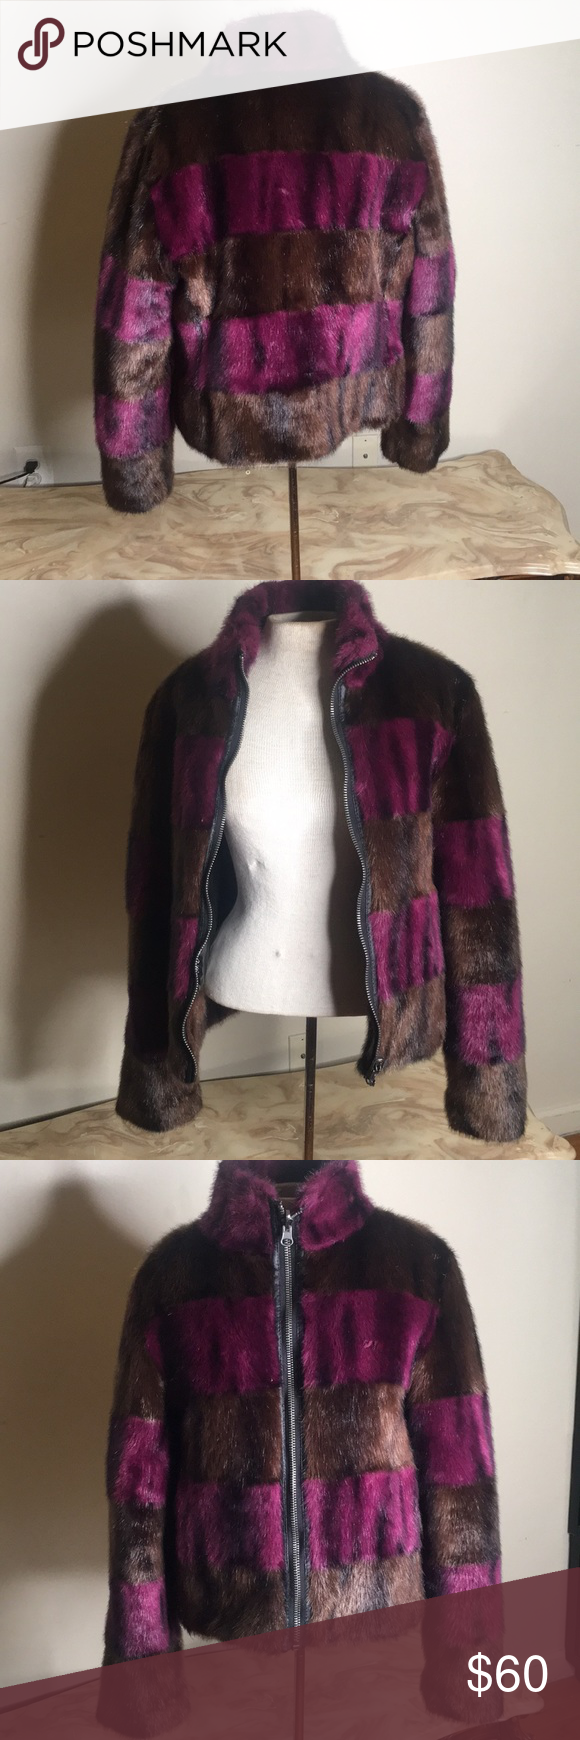 Custo Barcelona anytime coat #custobarcelona I just added this listing on Poshmark: Custo Barcelona anytime coat. #shopmycloset #poshmark #fashion #shopping #style #forsale #Custo Barcelona #Jackets & Blazers #custobarcelona